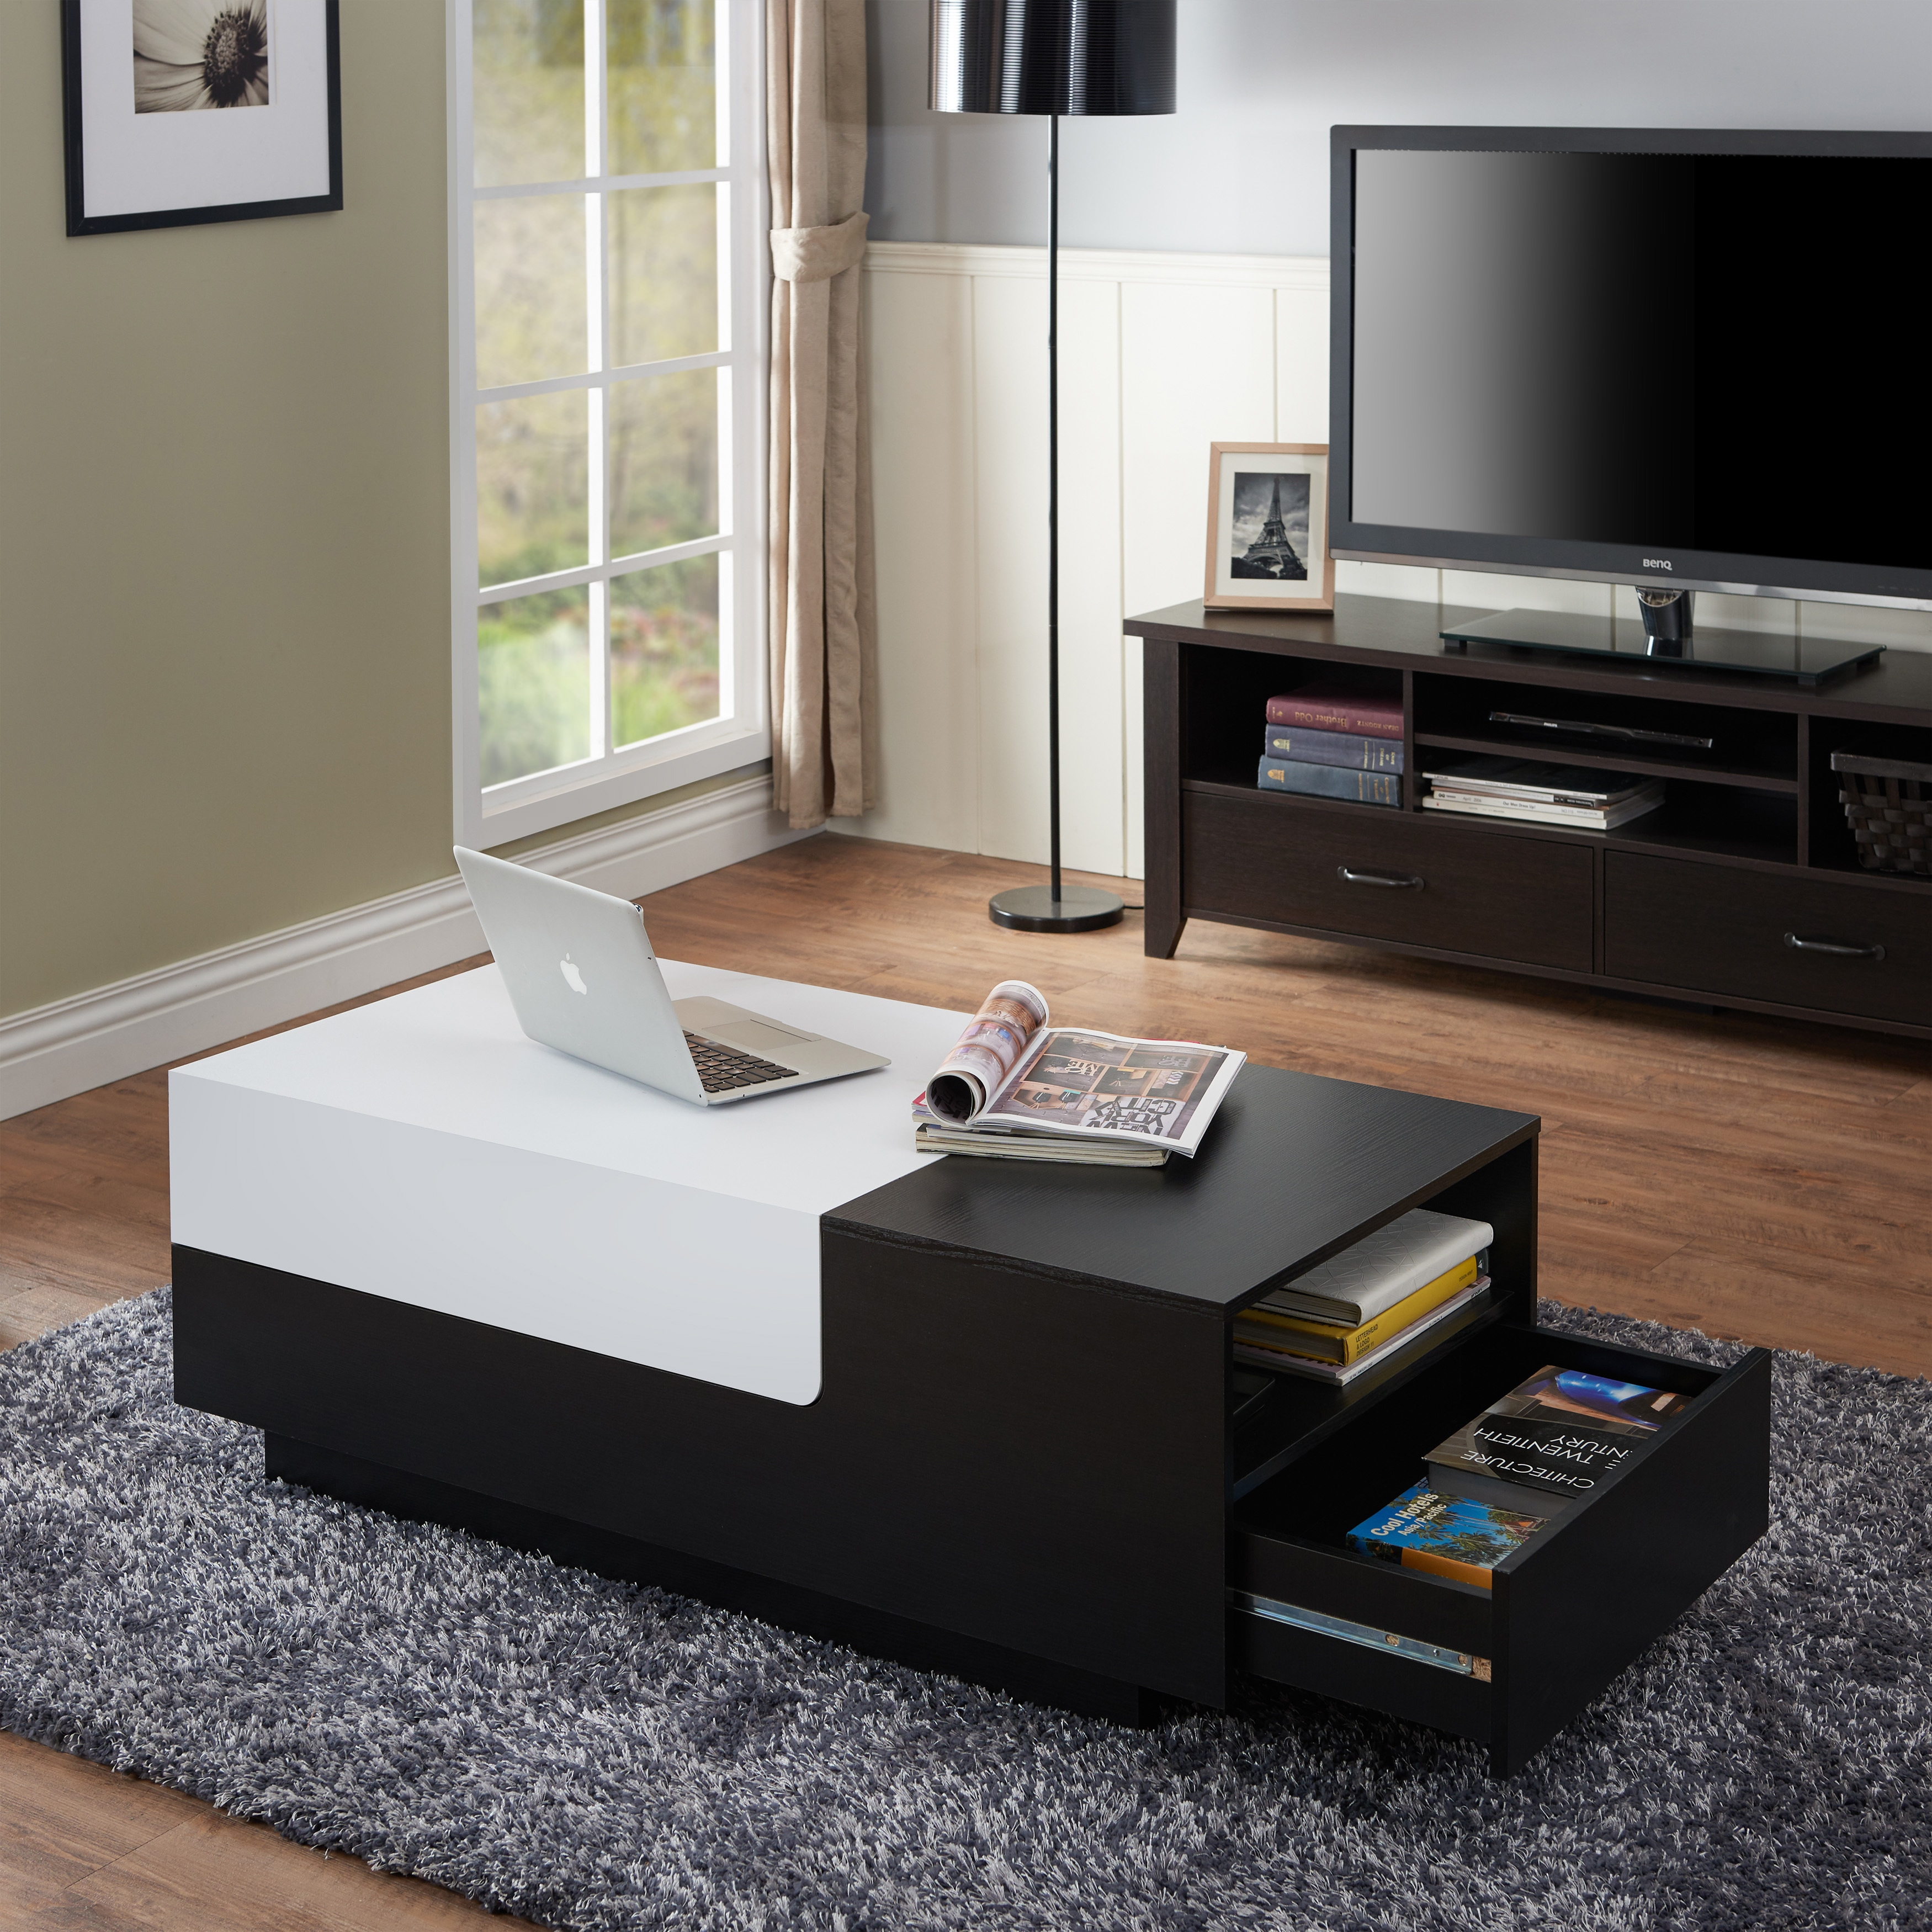 Shop strick bolton fremiet two tone coffee table free shipping today overstock com 22751720